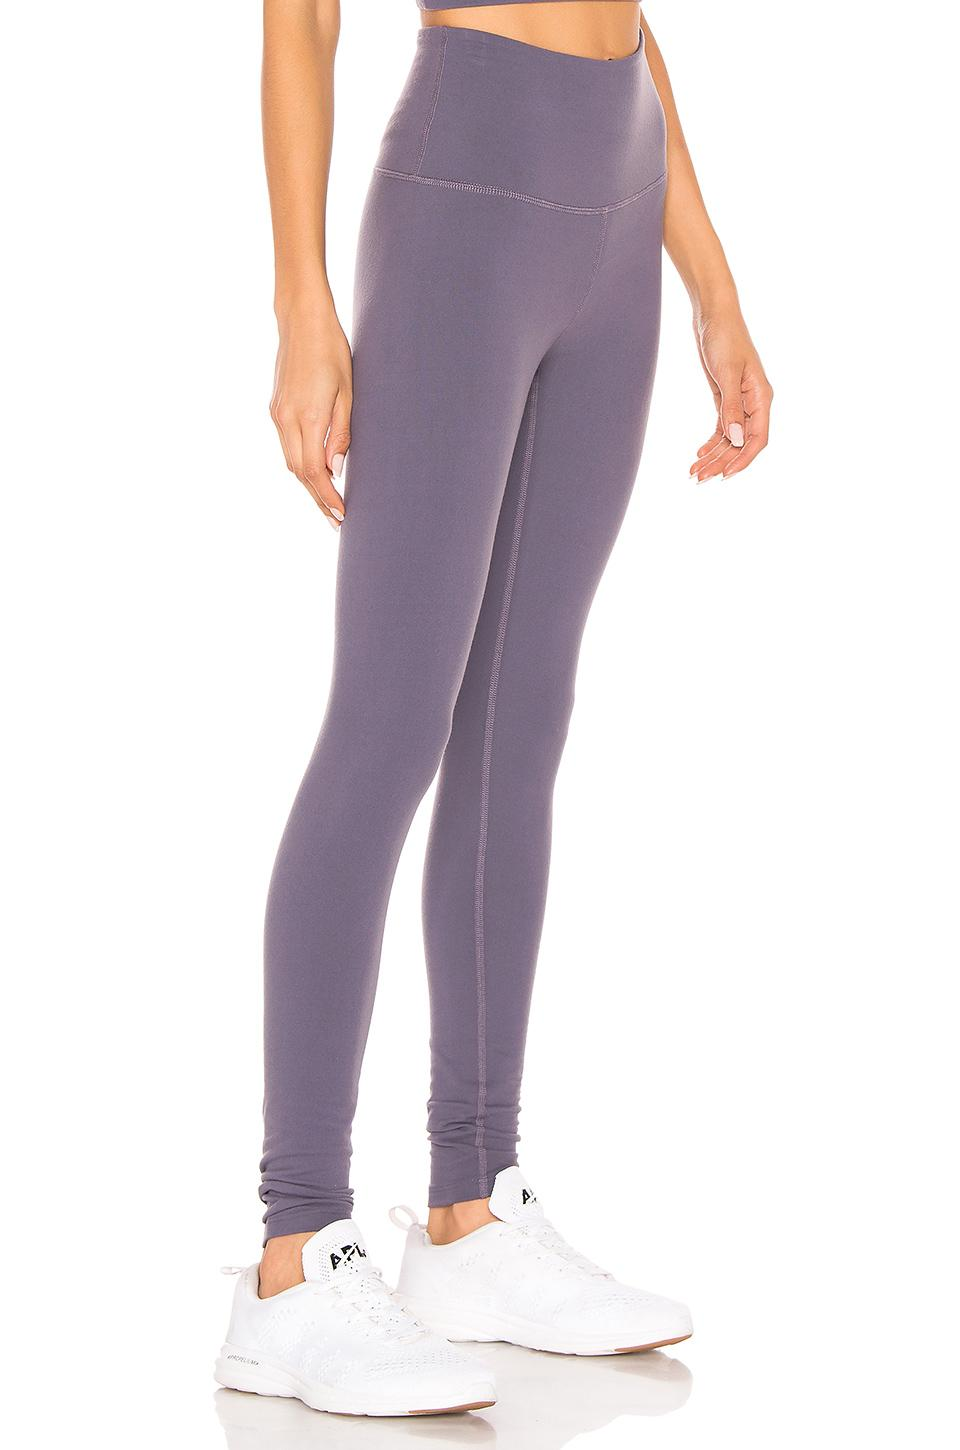 816e3dd822d2bb Beyond Yoga - Purple Caught In The Midi High Waisted Legging - Lyst. View  fullscreen